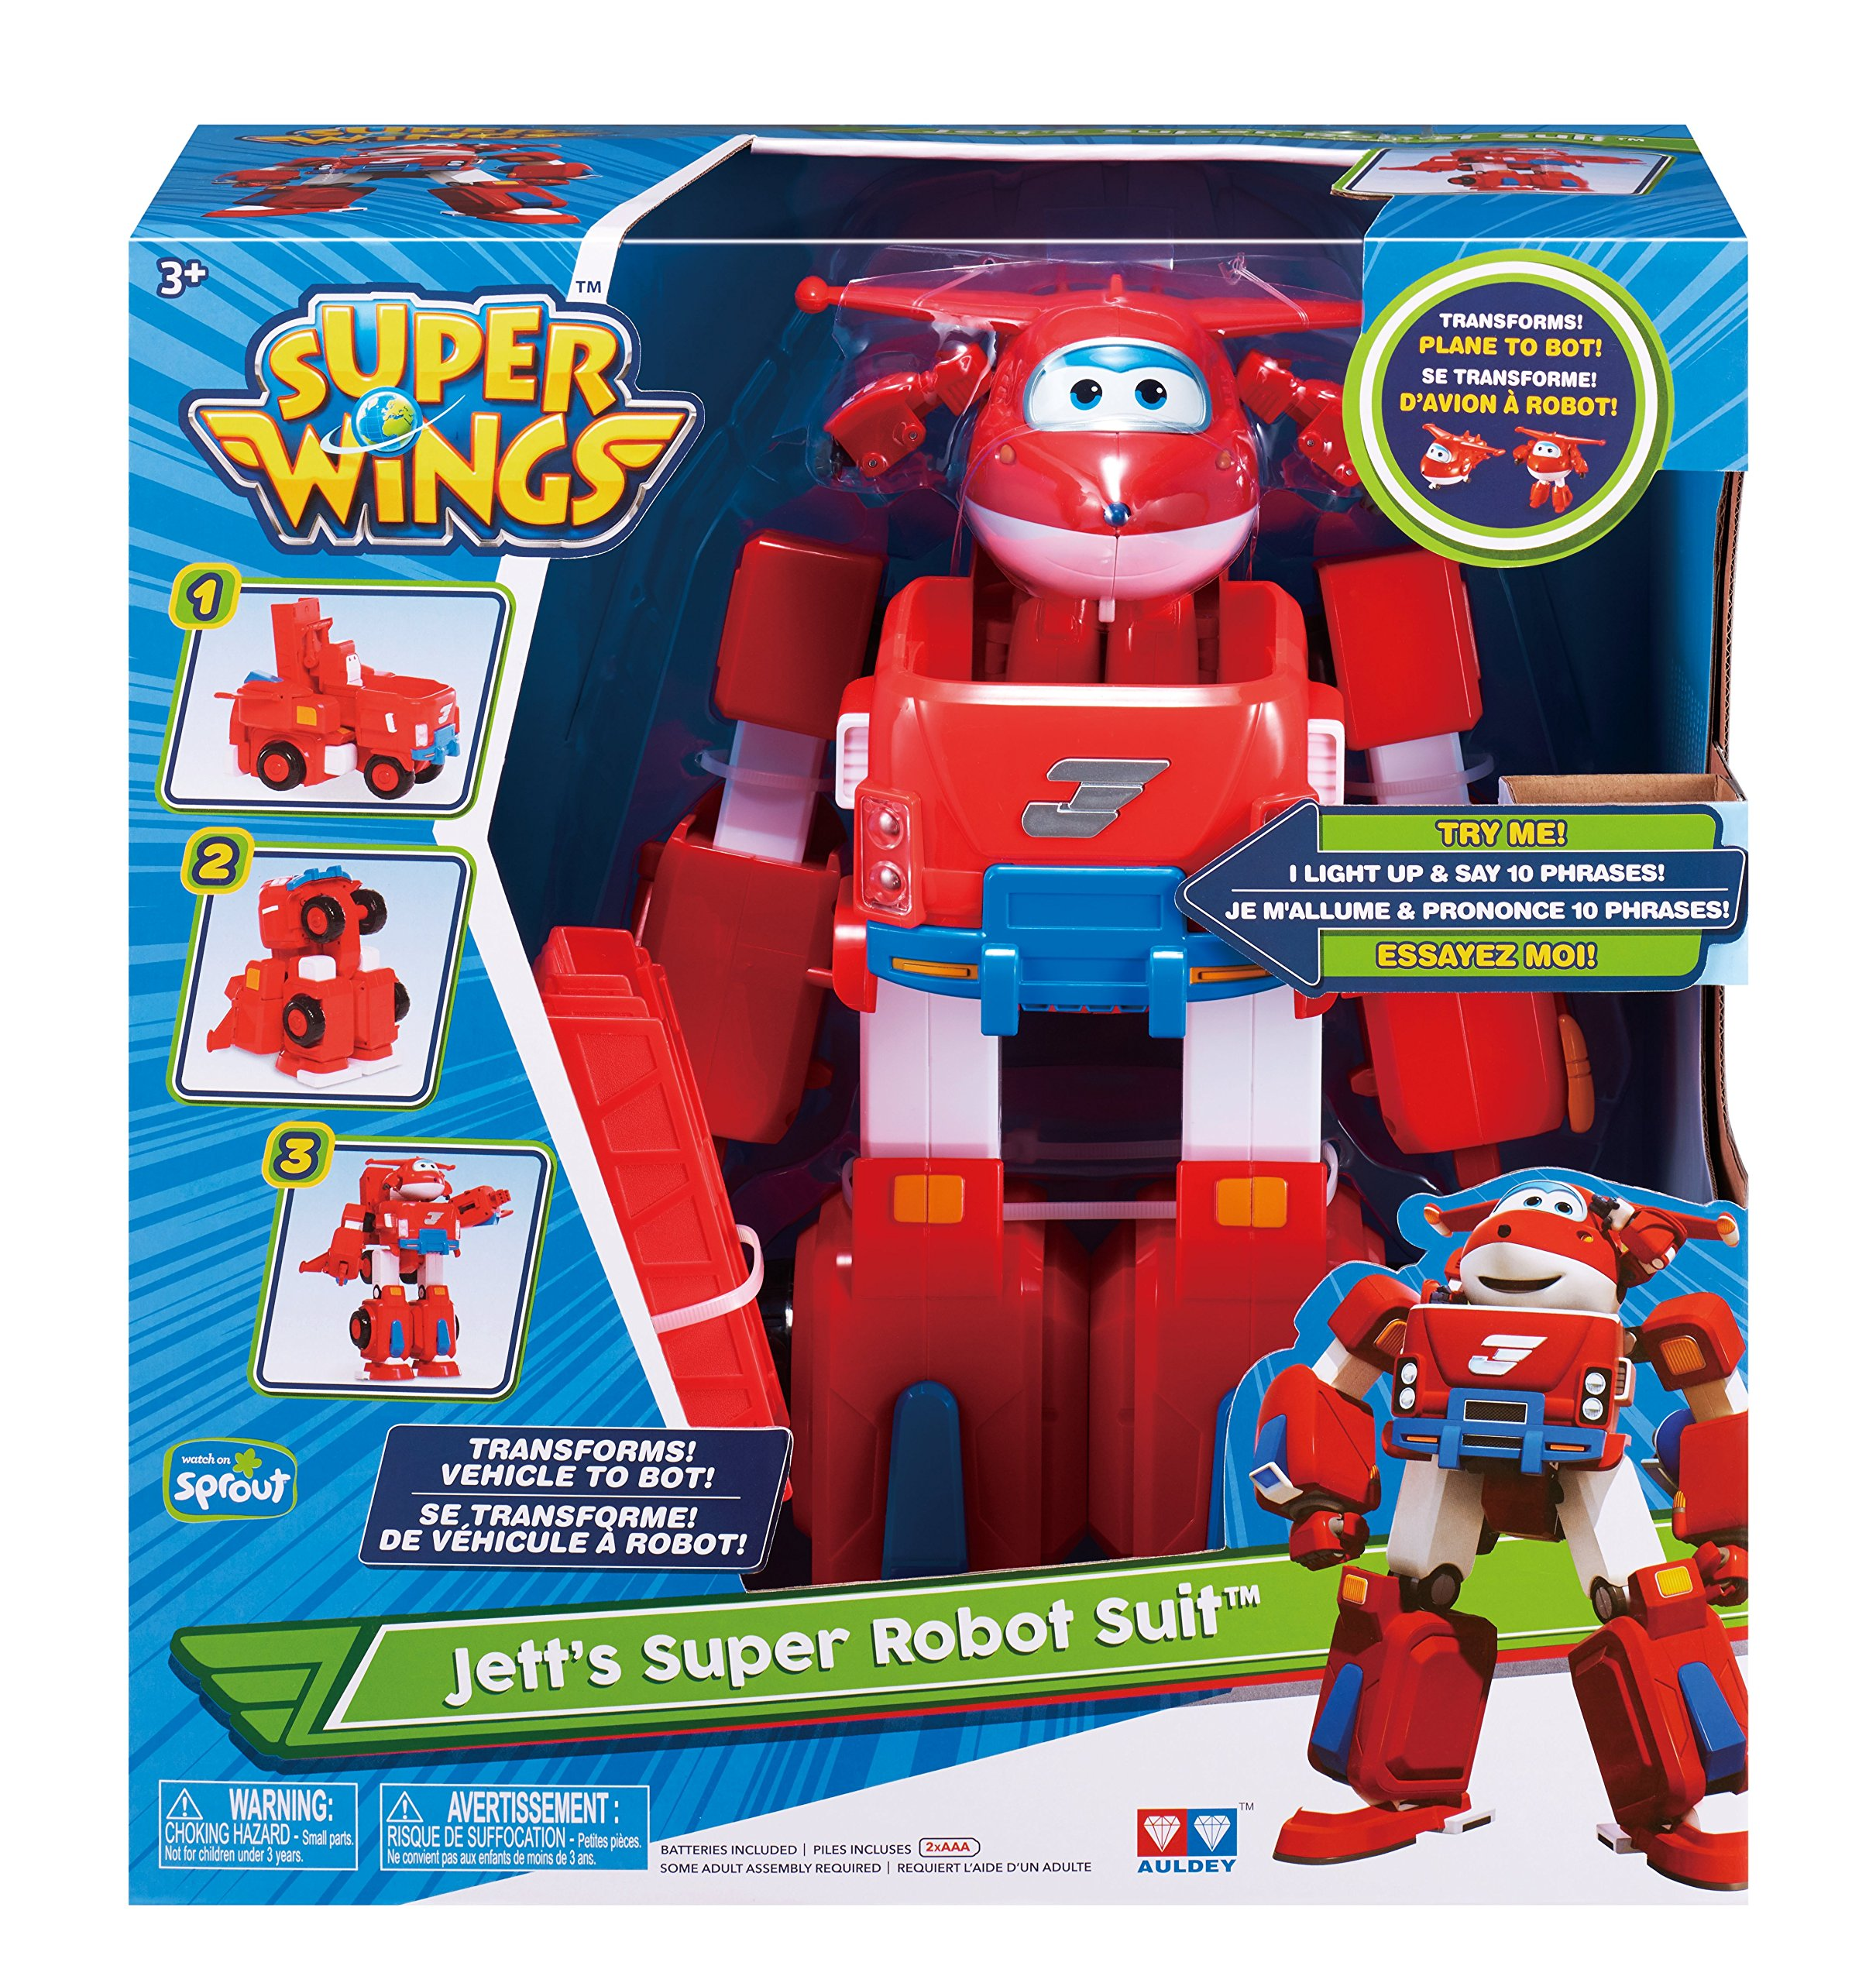 Super Wings - Jett's Super Robot Suit Large Transforming Toy Vehicle | Includes Jett | 5'' Scale by Super Wings - (Image #6)